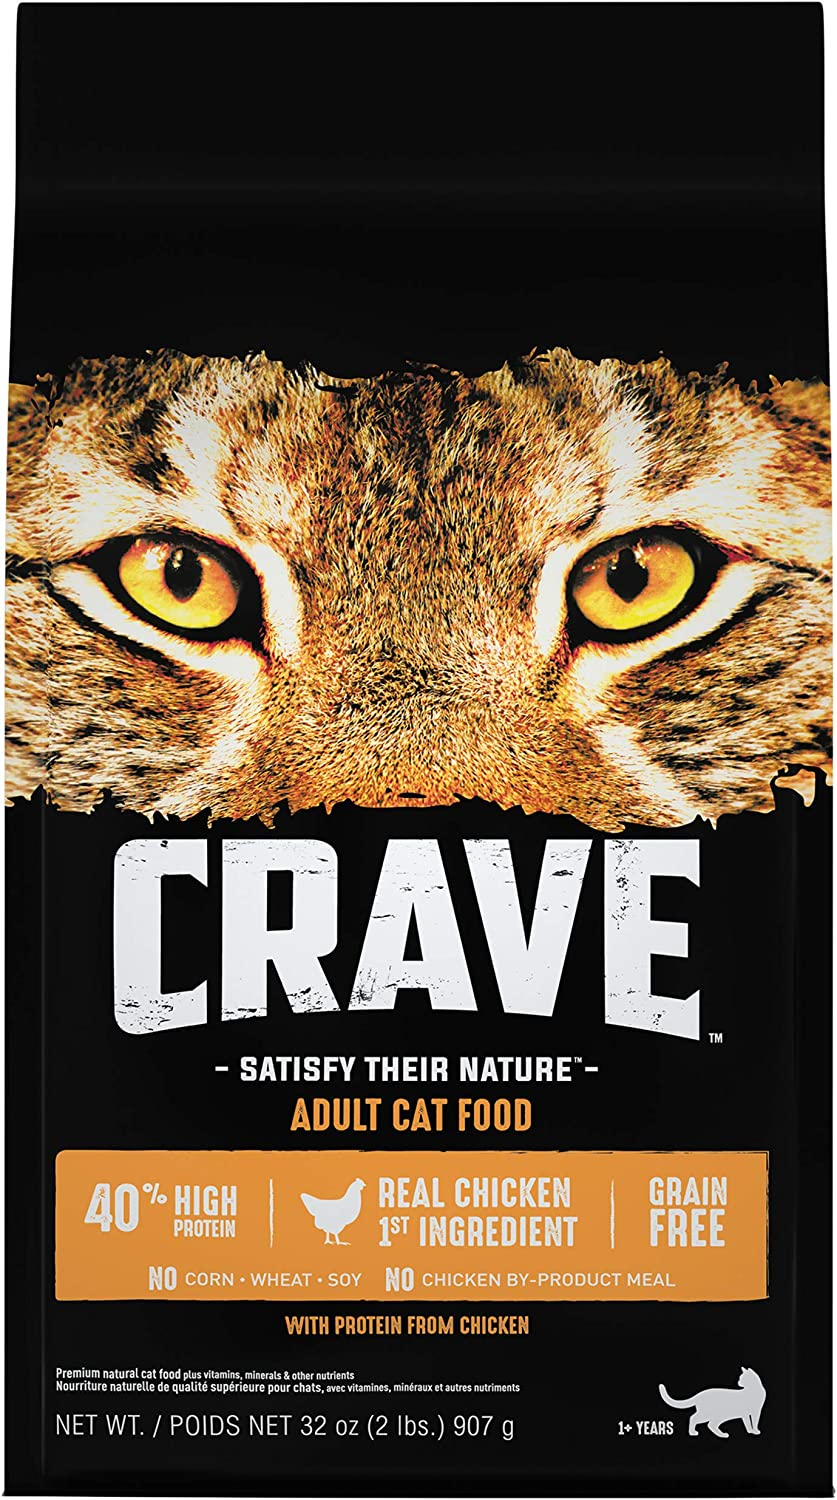 CRAVE Grain Free Adult High Protein Natural Dry Cat Food with Protein from Chicken, 2 lb. Bag